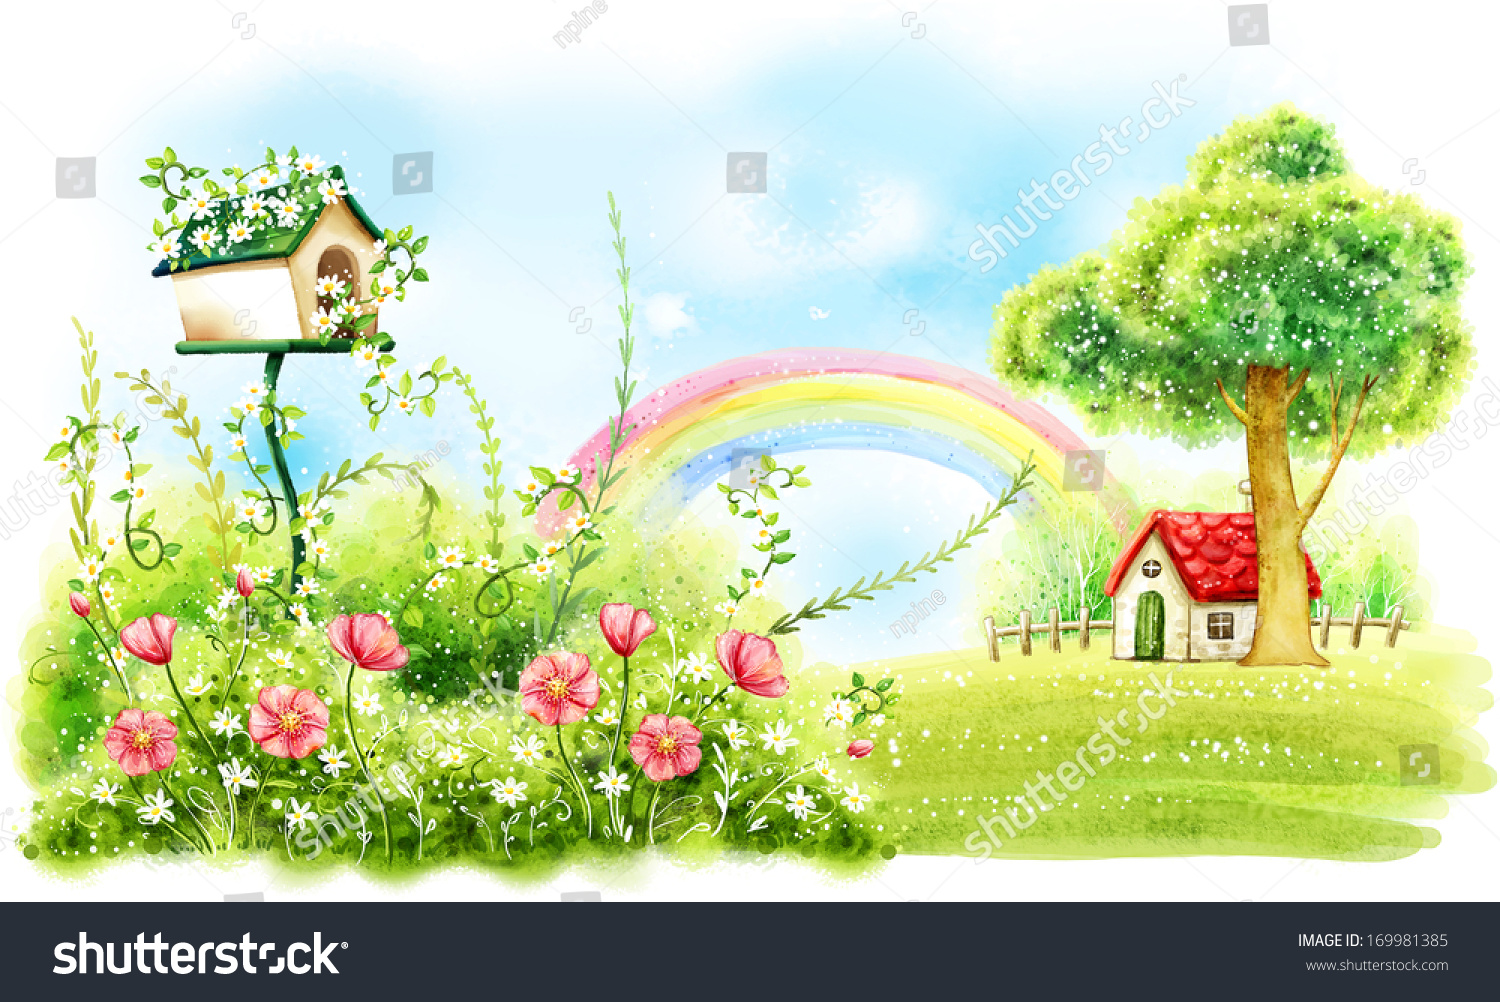 Bright Green House Bright Green Foliage With Pink Flowers And A Red Roofed House Under A